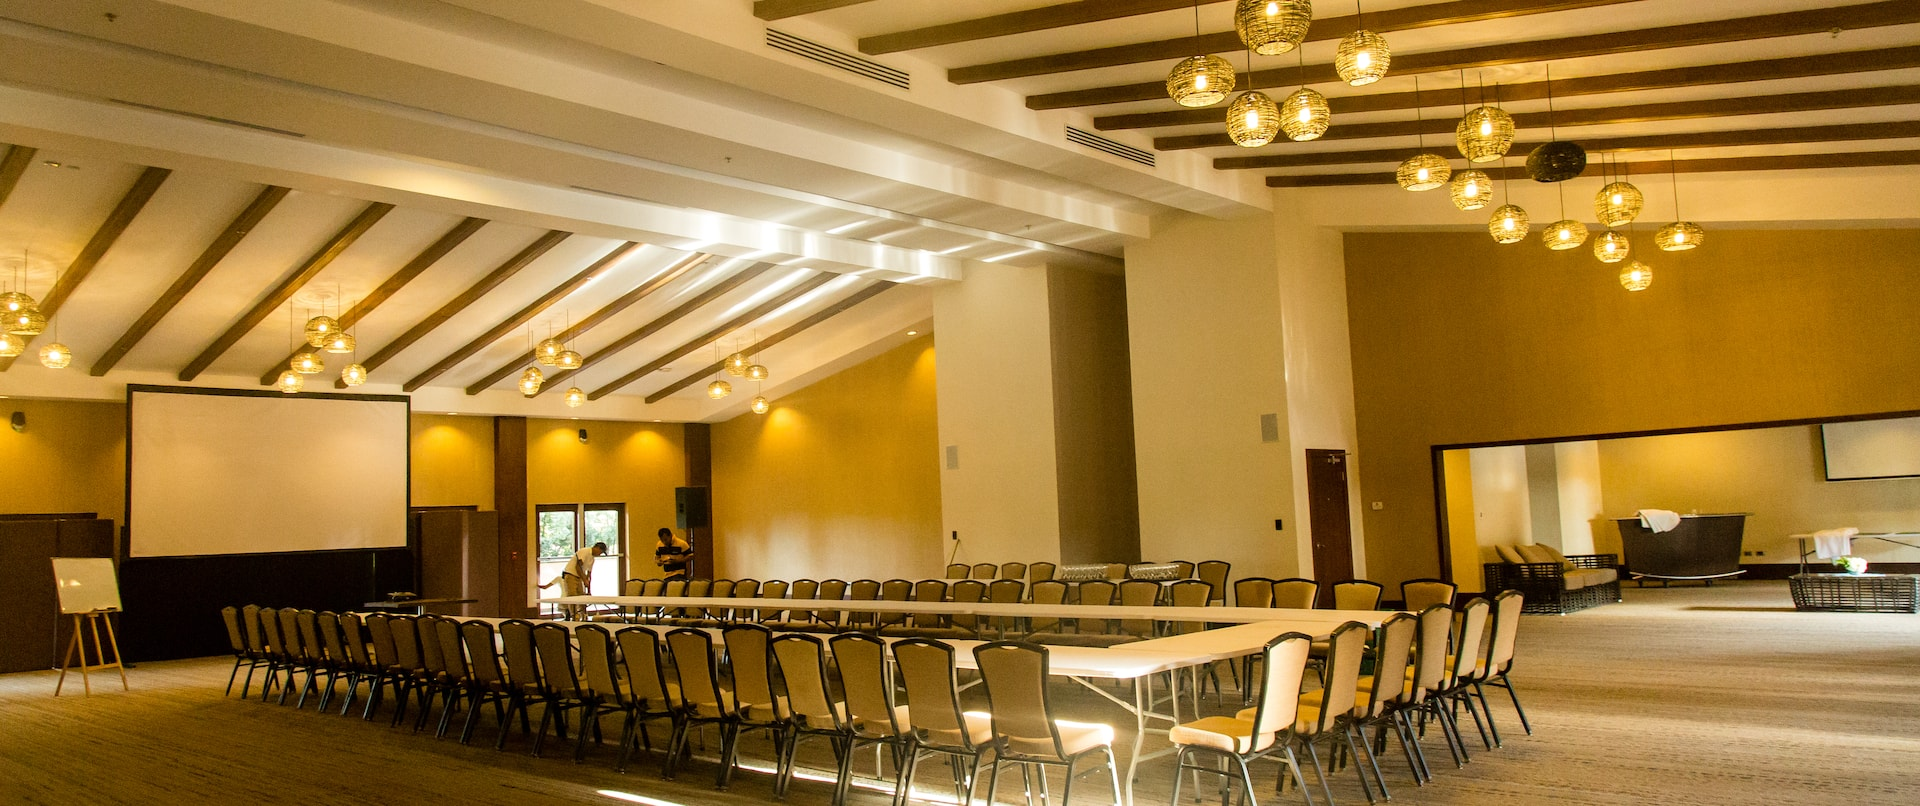 Ballroom with Large U-Shaped Conference Table and Projector Screen